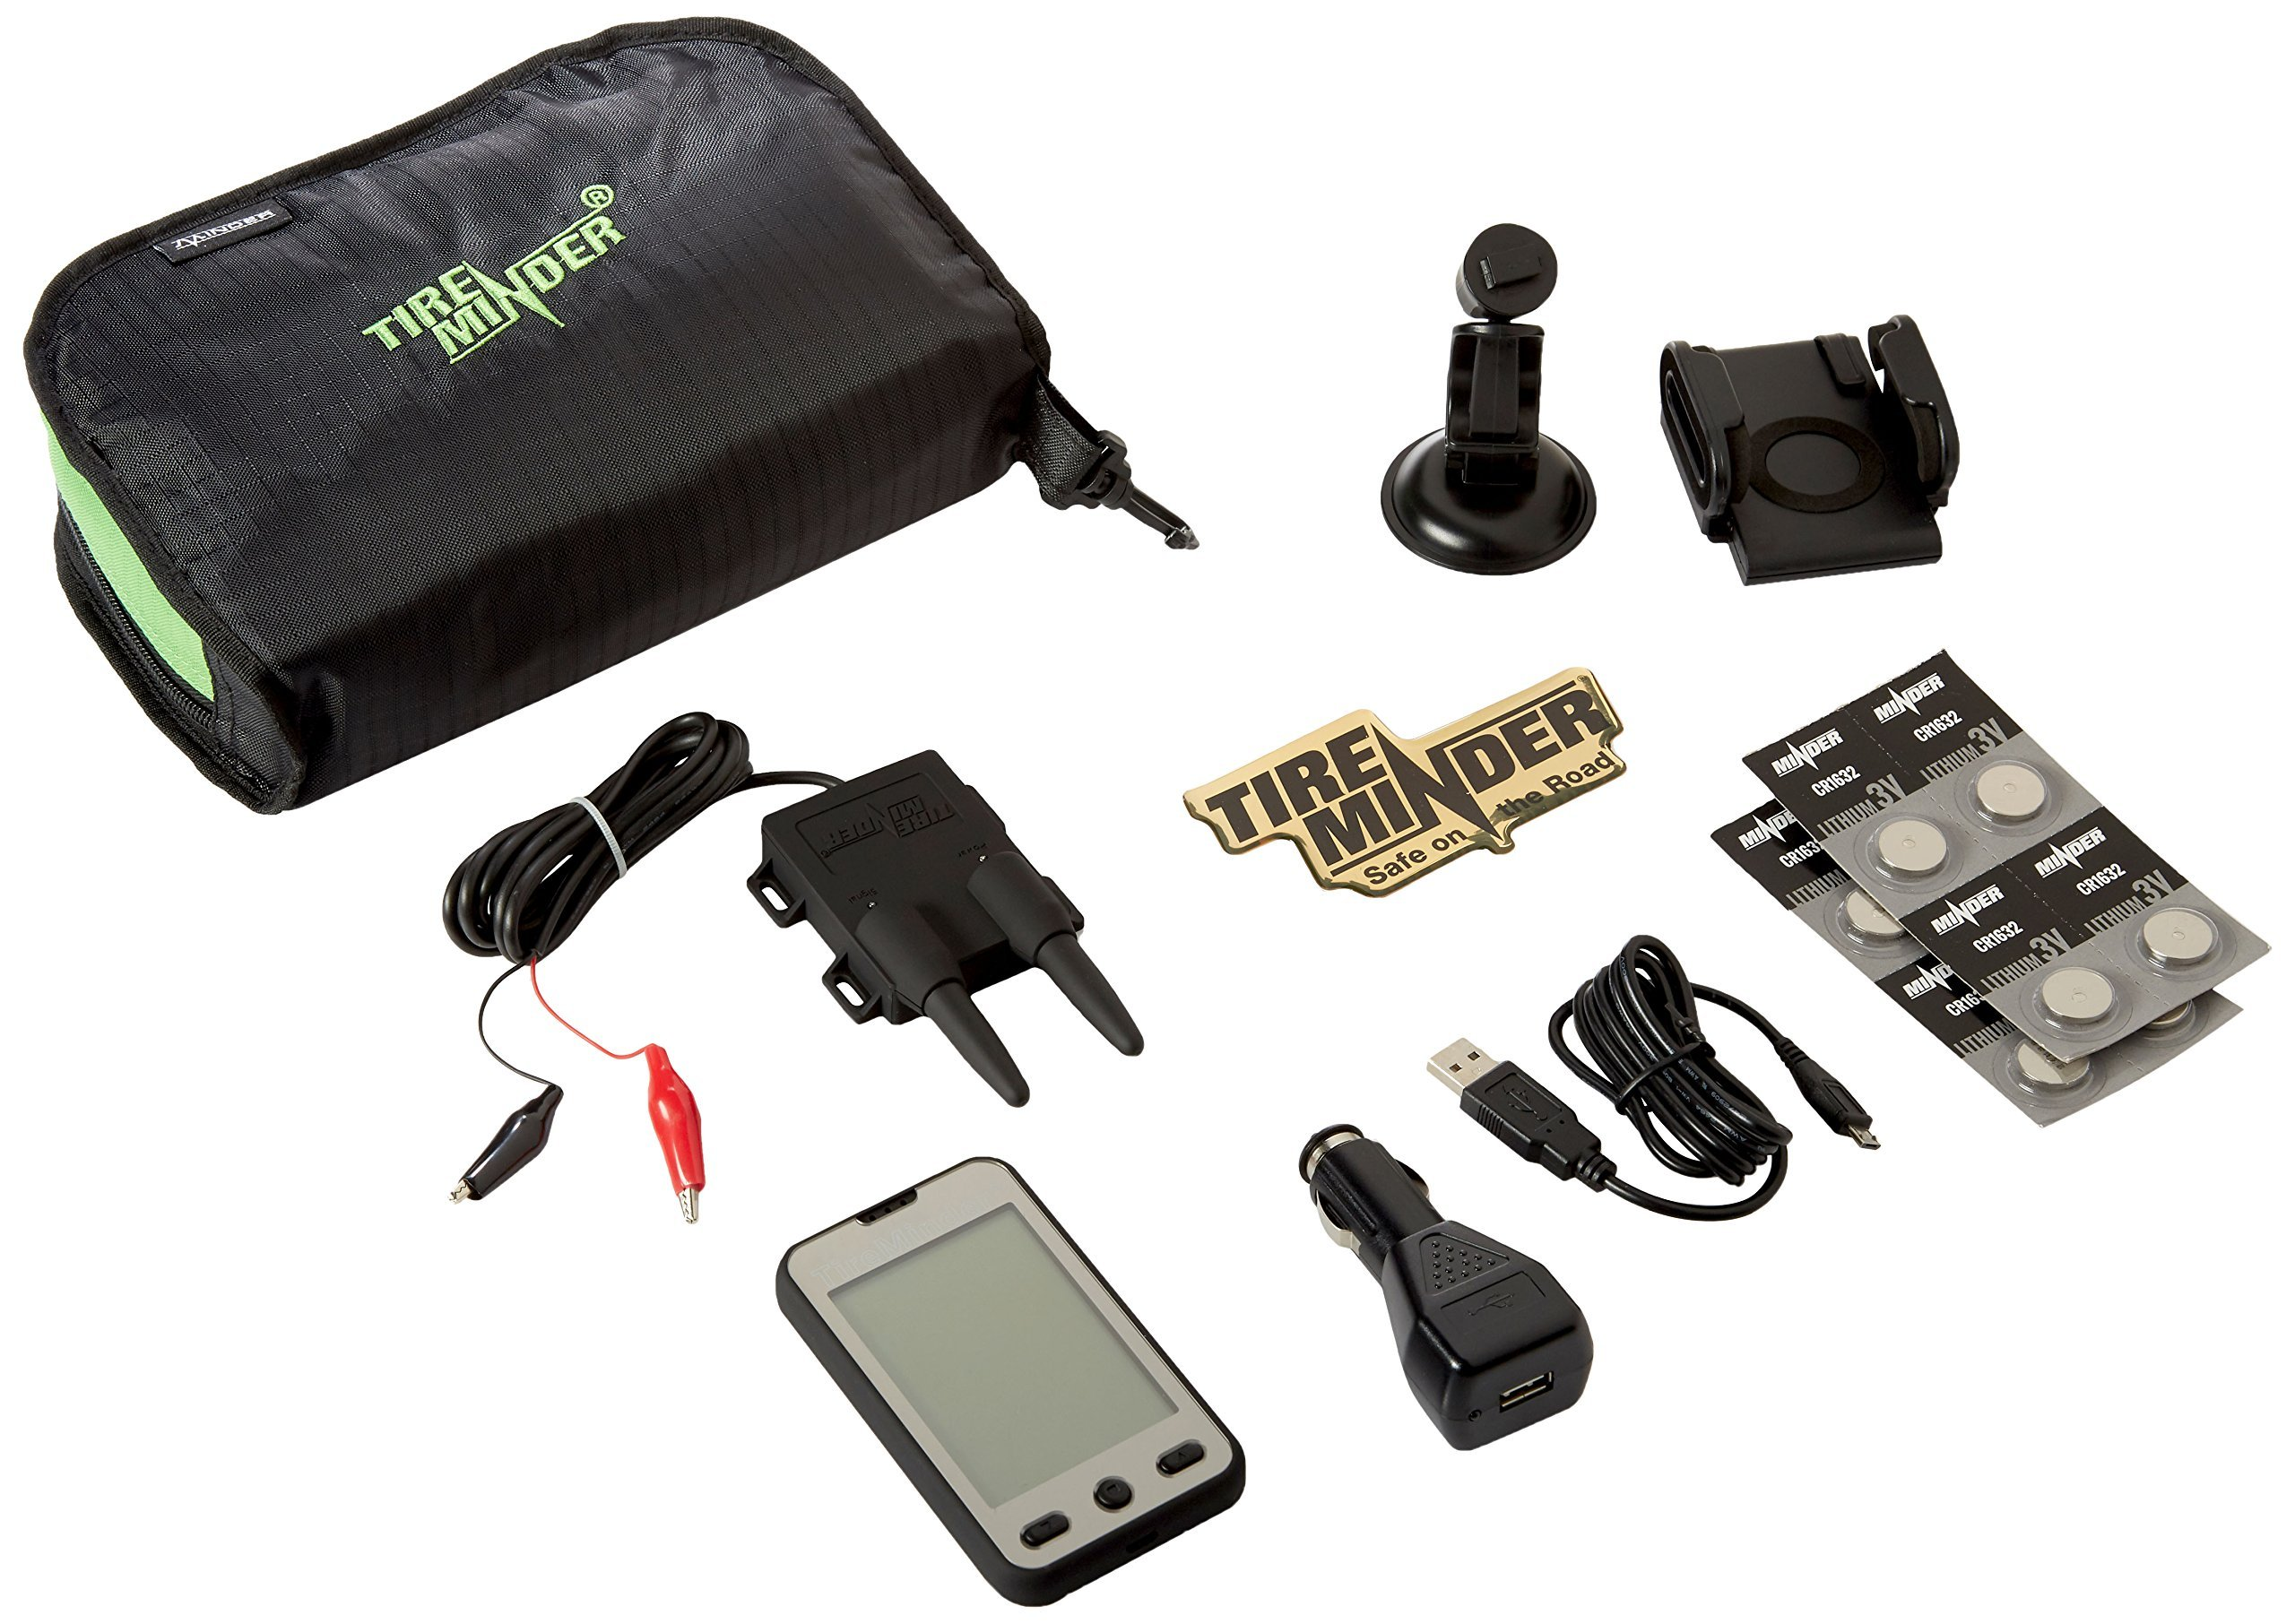 TireMinder A1A Tire Pressure Monitoring System (TPMS) with 4 Transmitters for RVs, MotorHomes, 5th Wheels, Motor Coaches and Trailers